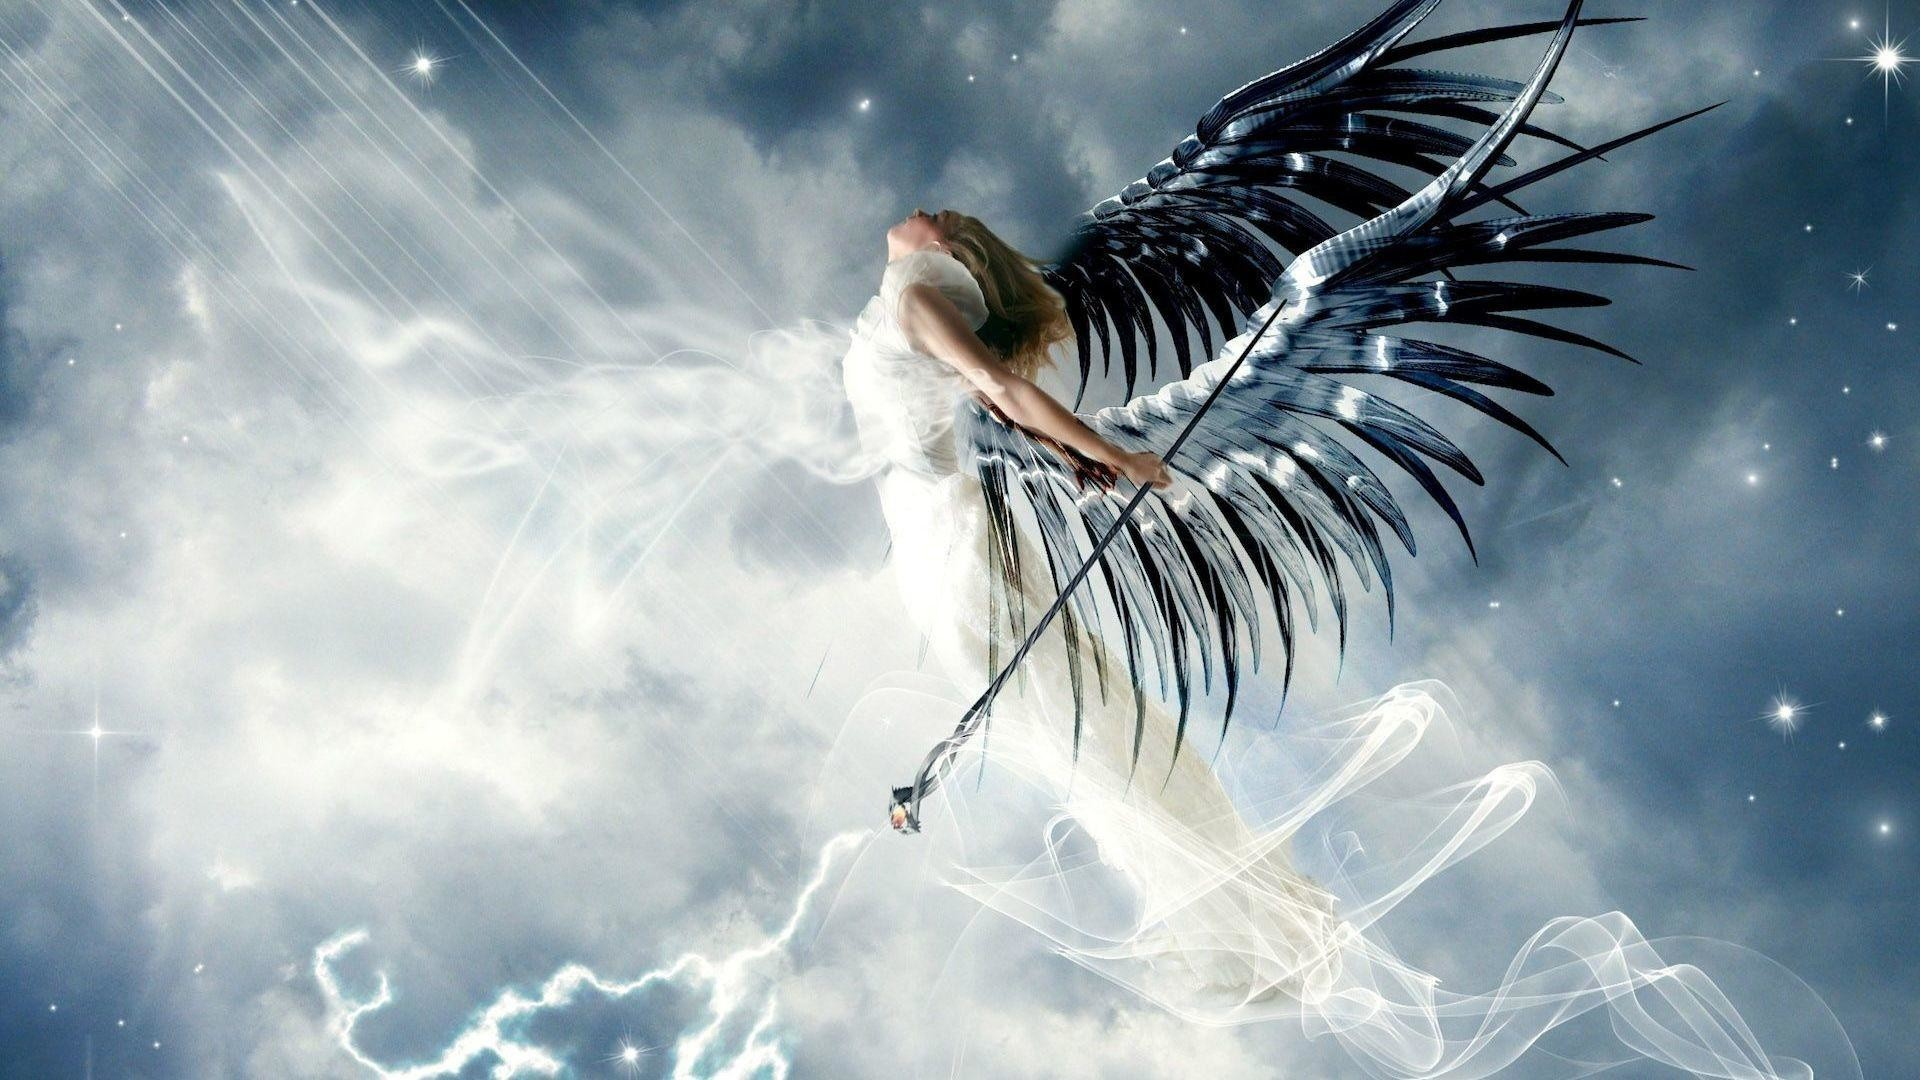 Res: 1920x1080, White Angel - Fantasy Art Wallpaper | Wallpaper Studio 10 | Tens of  thousands HD and UltraHD wallpapers for Android, Windows and Xbox